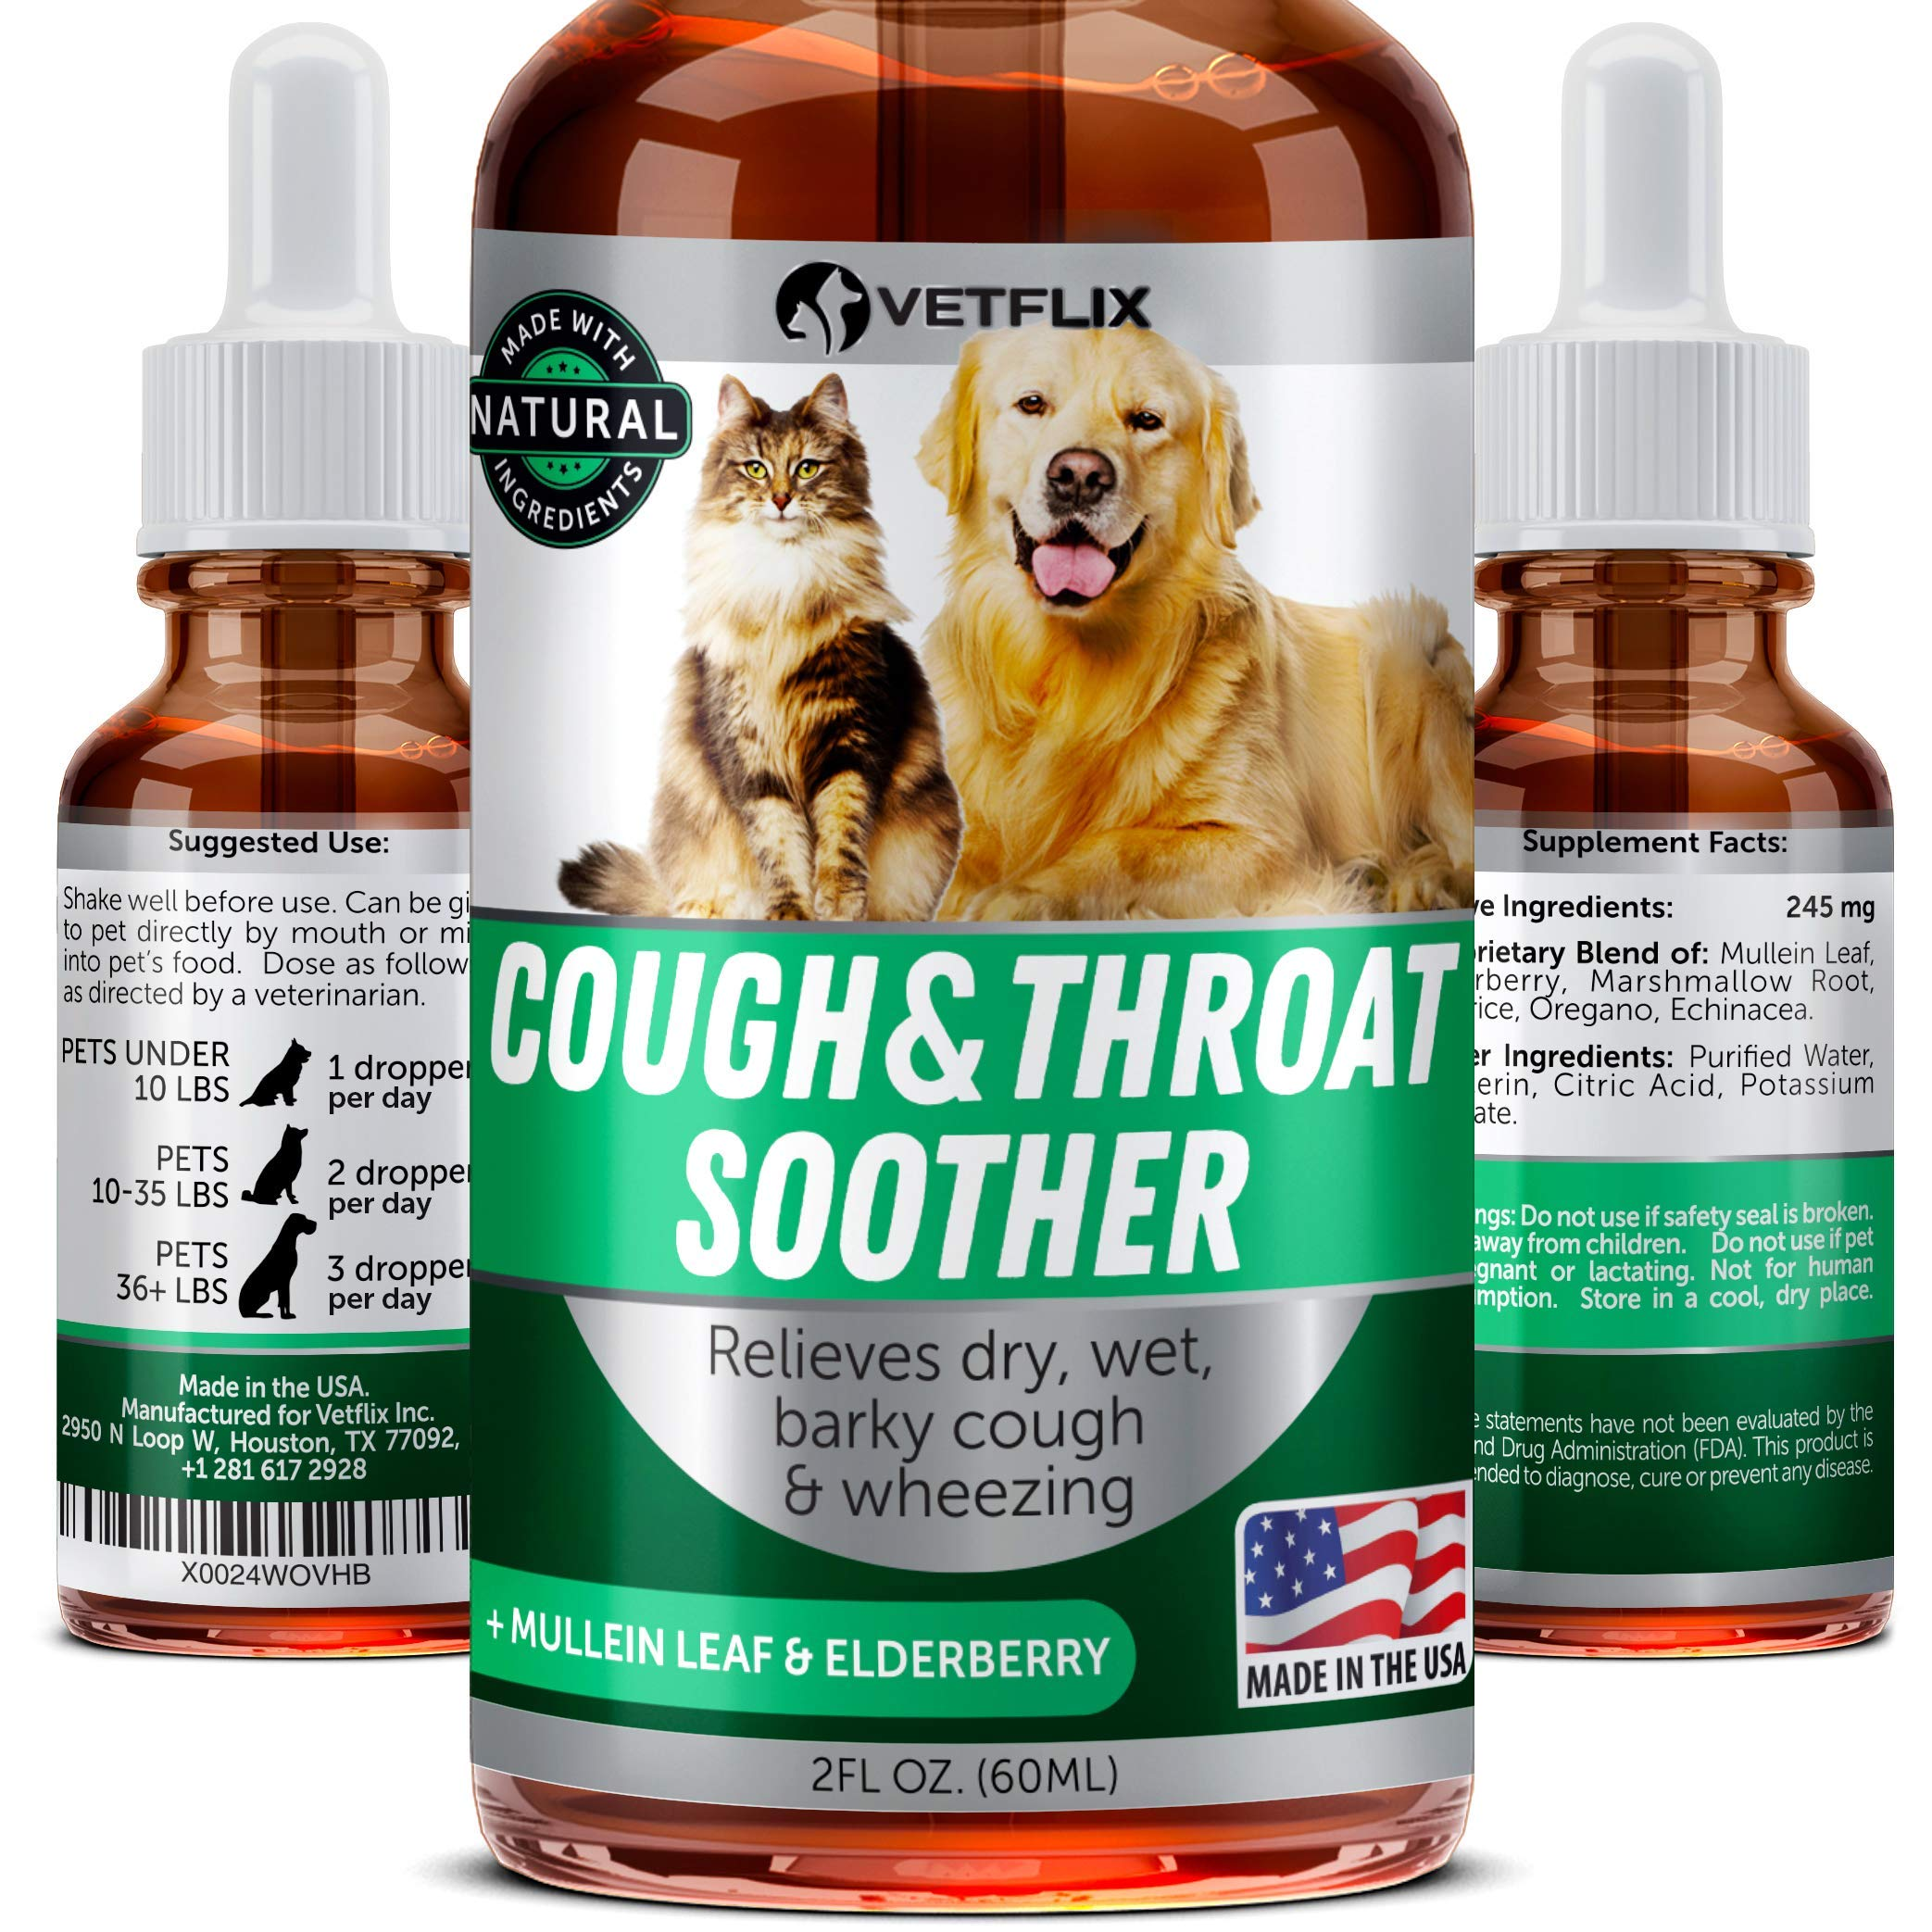 Vetflix Cough & Throat Soother for Dogs and Cats - Made in USA - Premium Herbal Cough Supplement - Cat Asthma & Kennel Cough Away - Mullen Leaf & Elderberry - Help with Dry, Wet & Barky Pet Cough by Vetflix